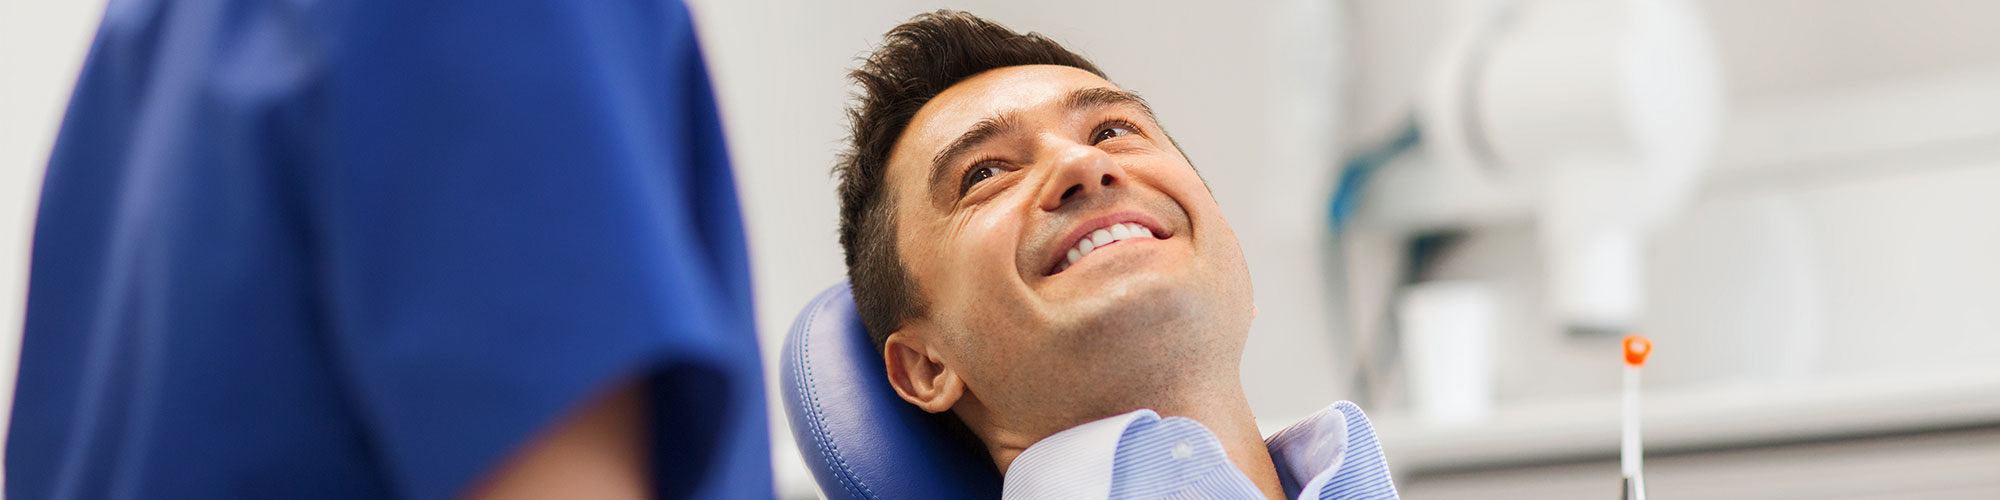 Frequently Asked Questions - Great Smile Deerfield, IL